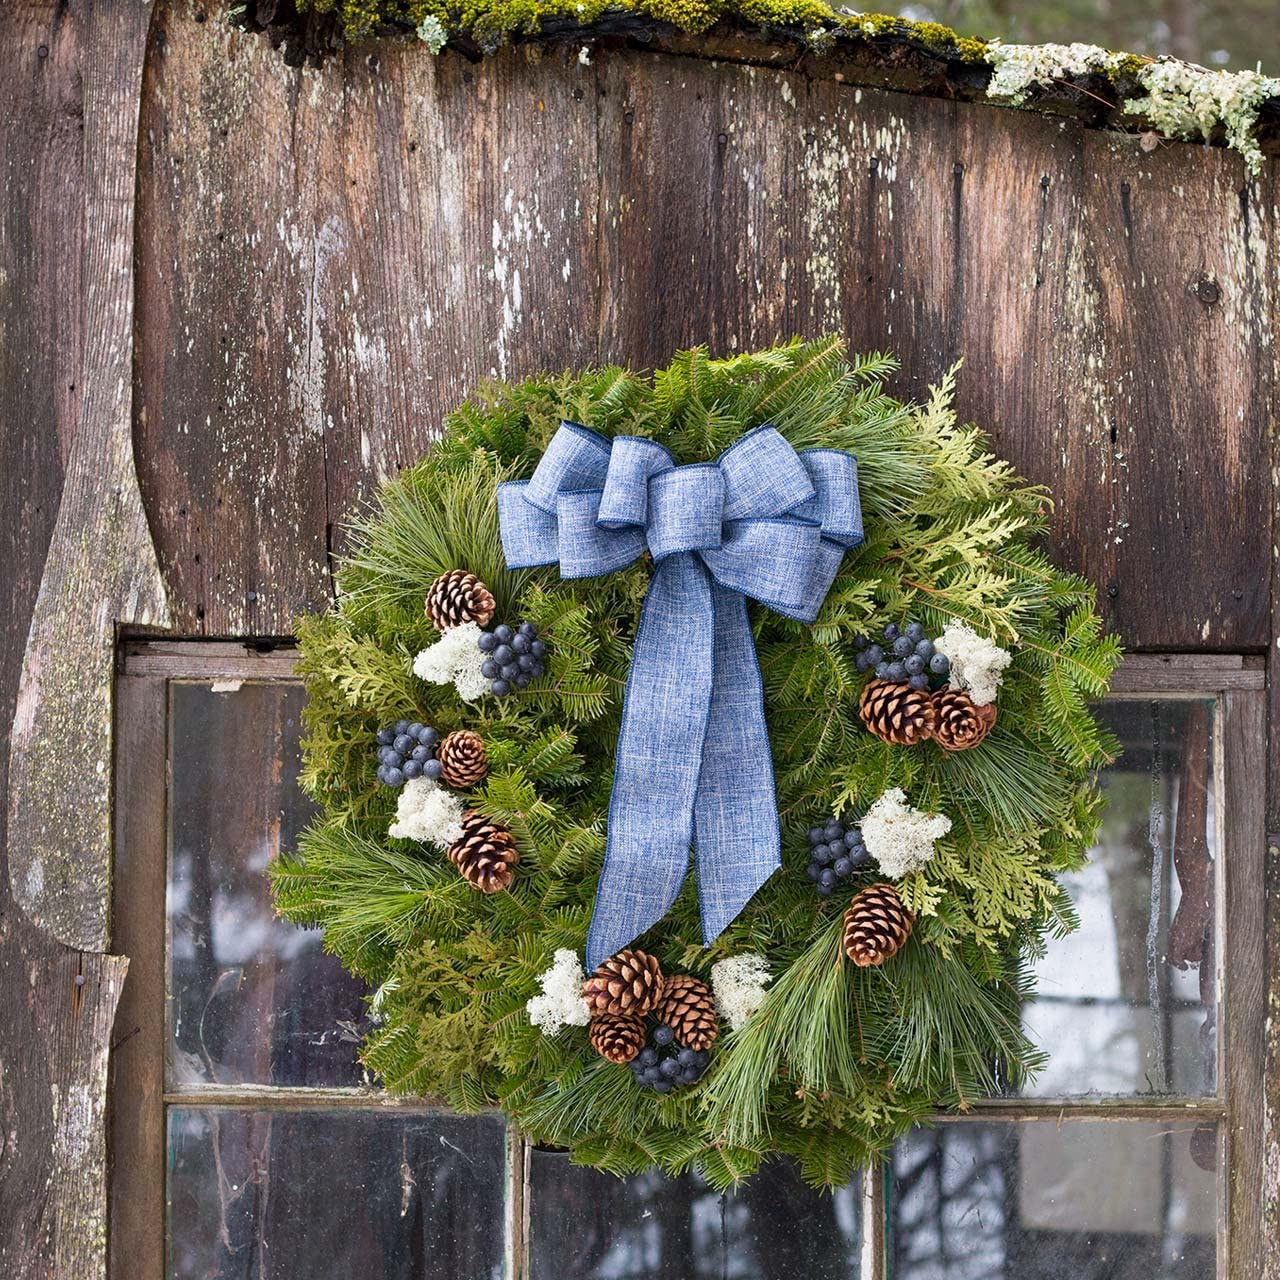 Blue Bow, Fabric Makes a Great Gift HARBOR FARM EST.1986 Fresh Real Blueberry Christmas Wreath for Front Door Lasts Through The Holiday Season Arrives in Red Gift Box